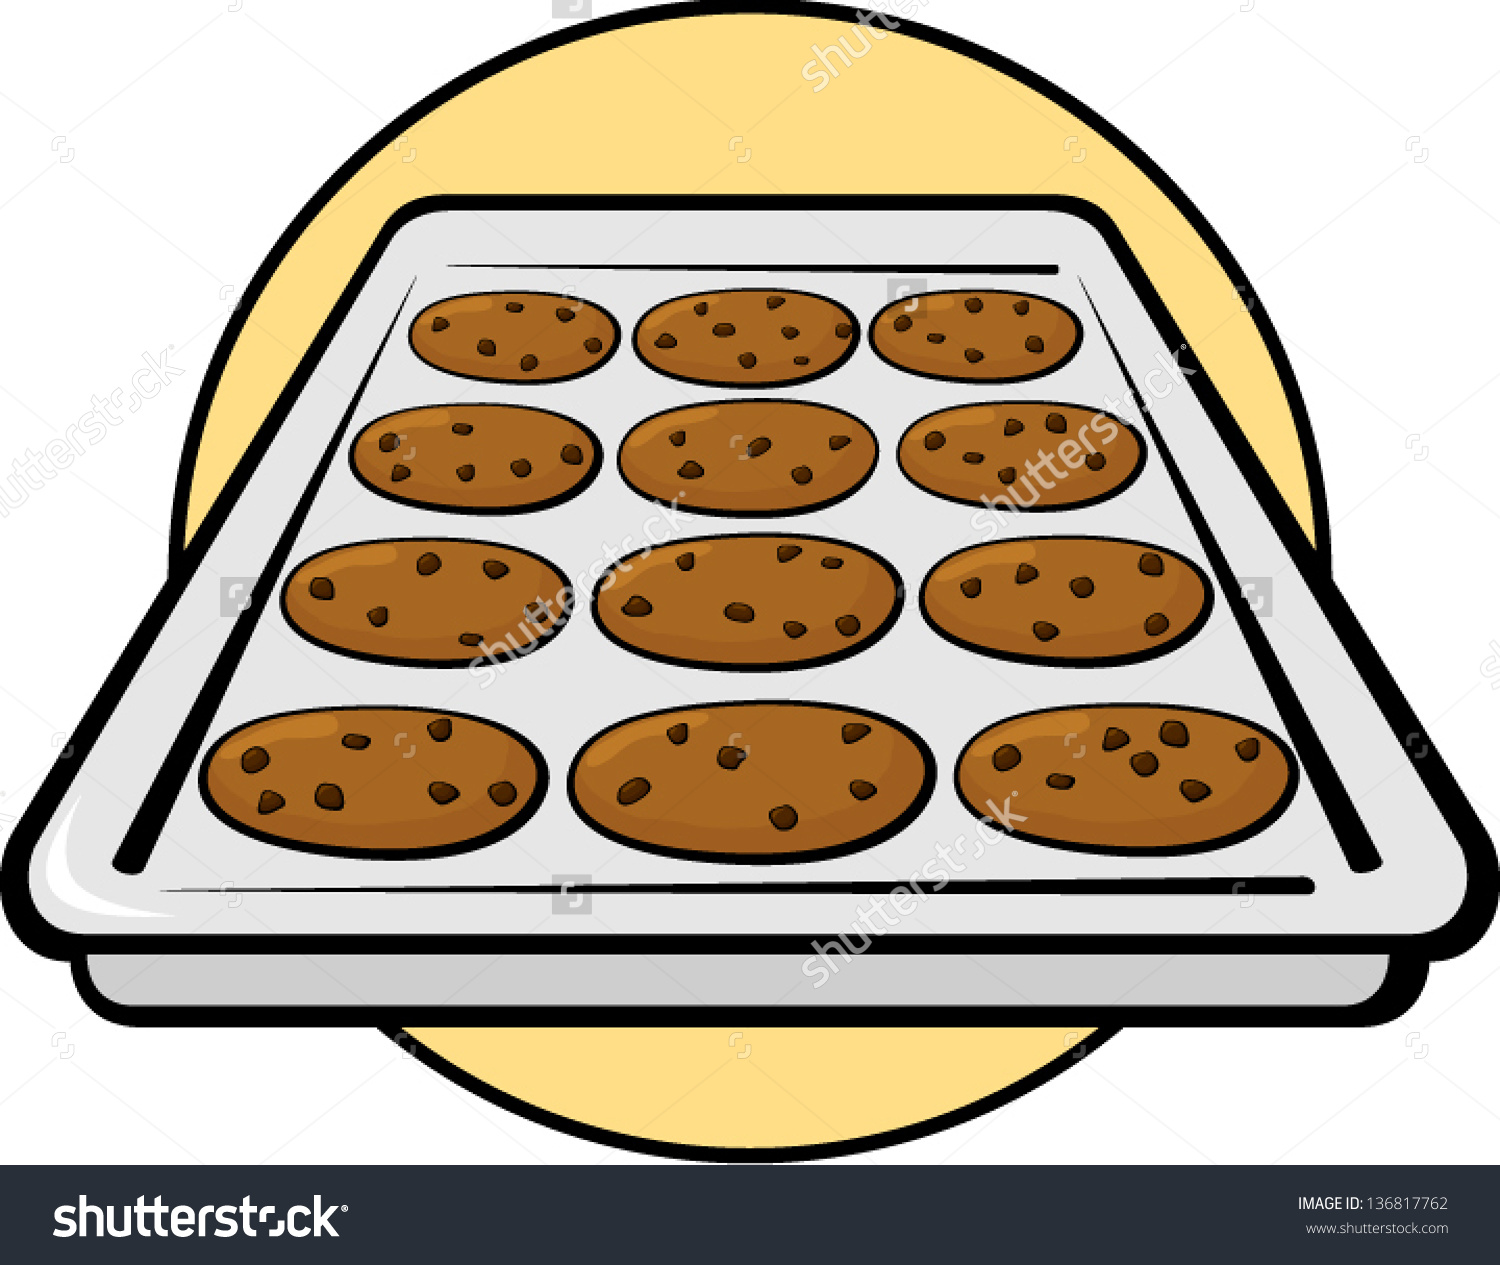 Cookie Tray Clipart.